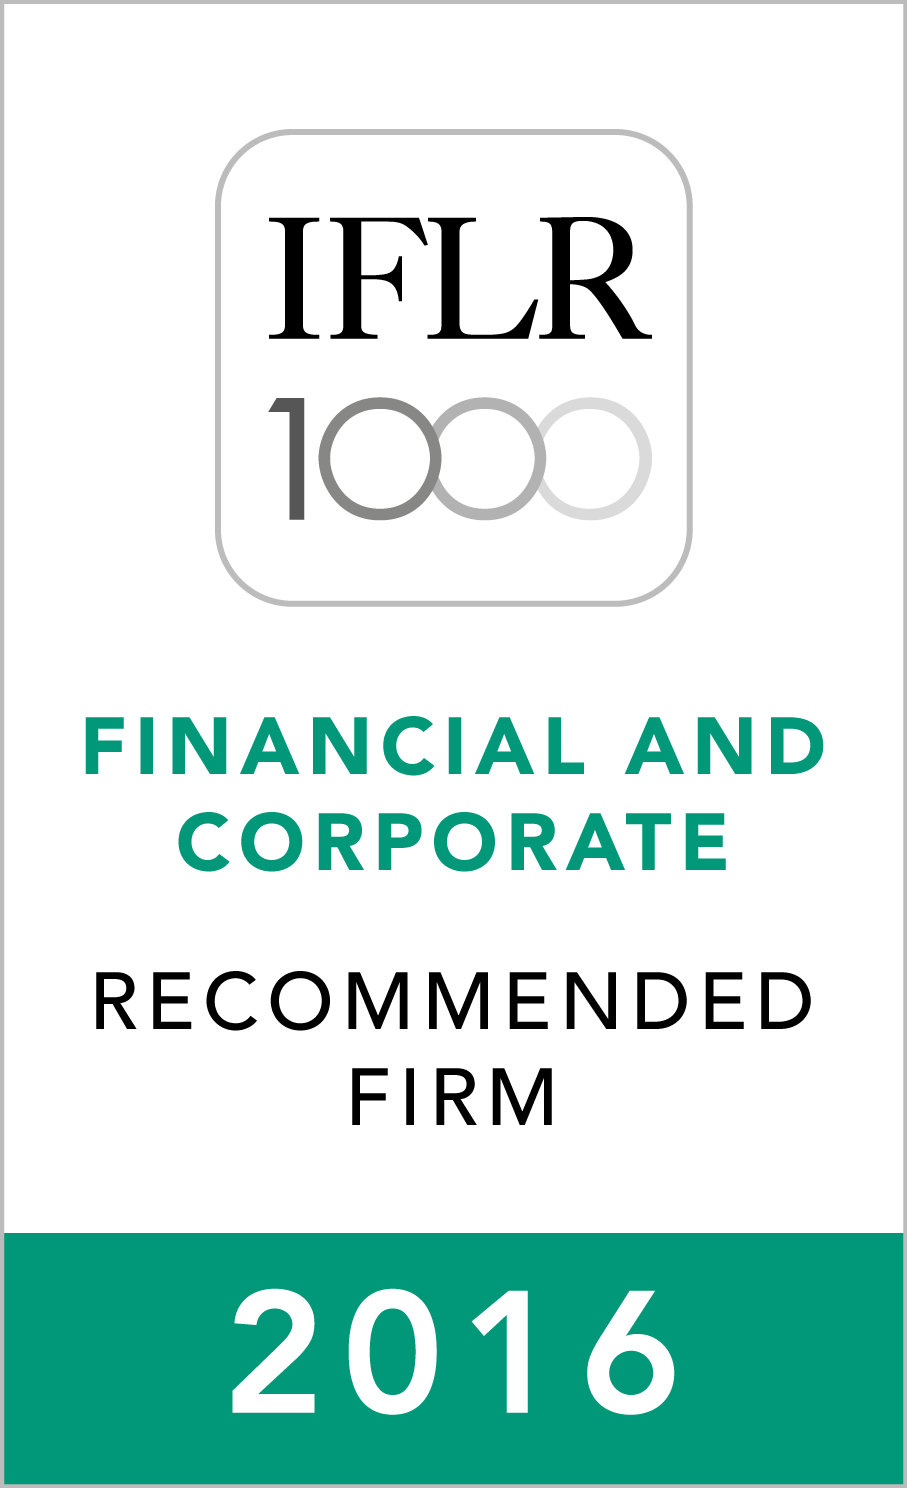 IFLR1000 (2016) Recommended Firm Rosette_2